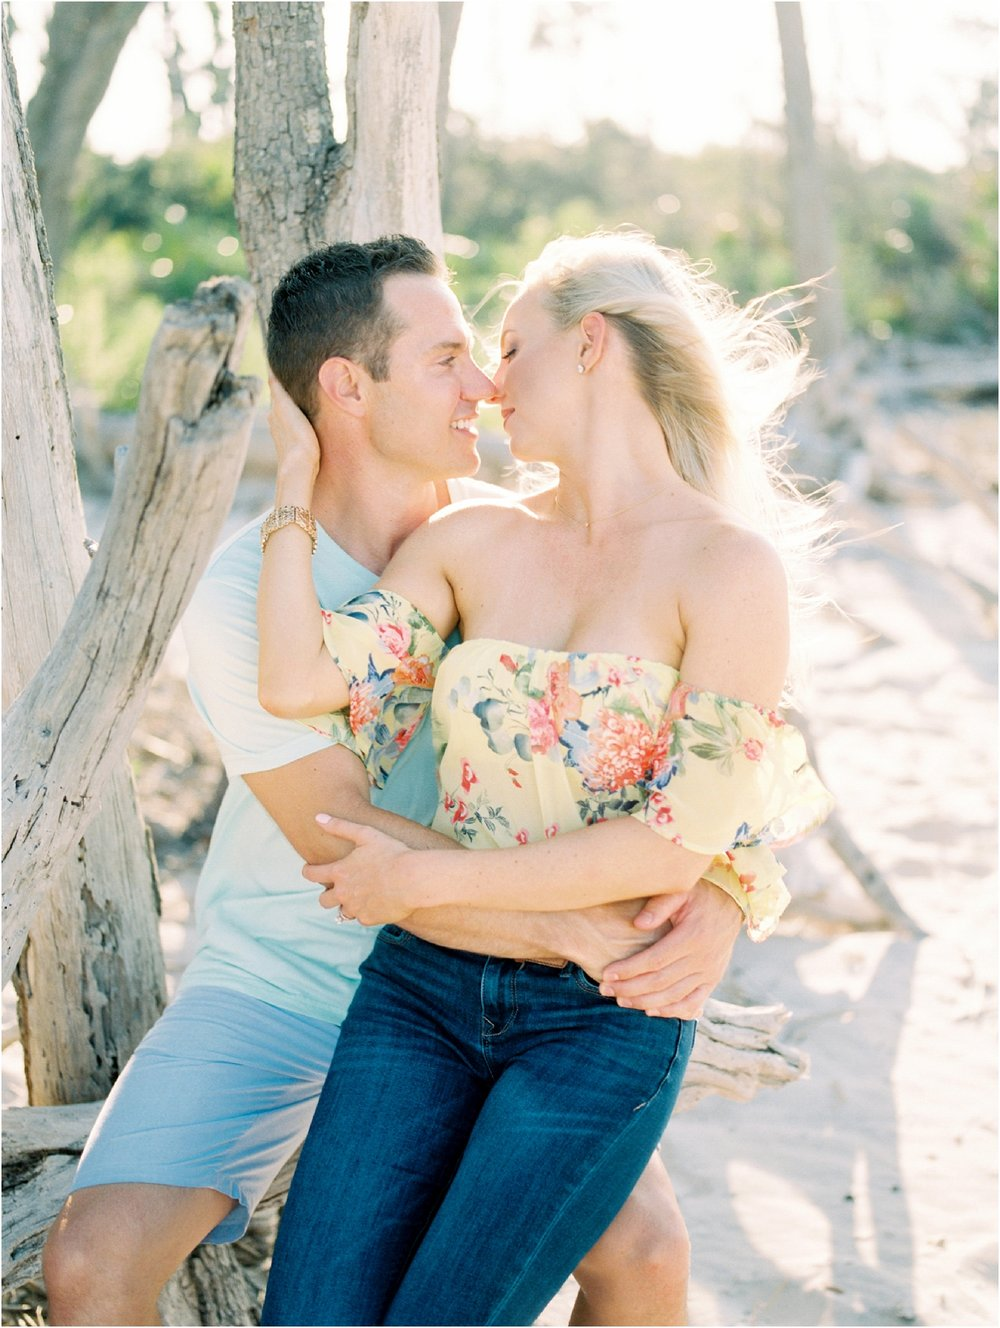 Lisa Silva Photography- Ponte Vedra Beach and Jacksonville, Florida Fine Art Film Wedding Photography- Engagement Shoot at Big Talbot Island_0002.jpg